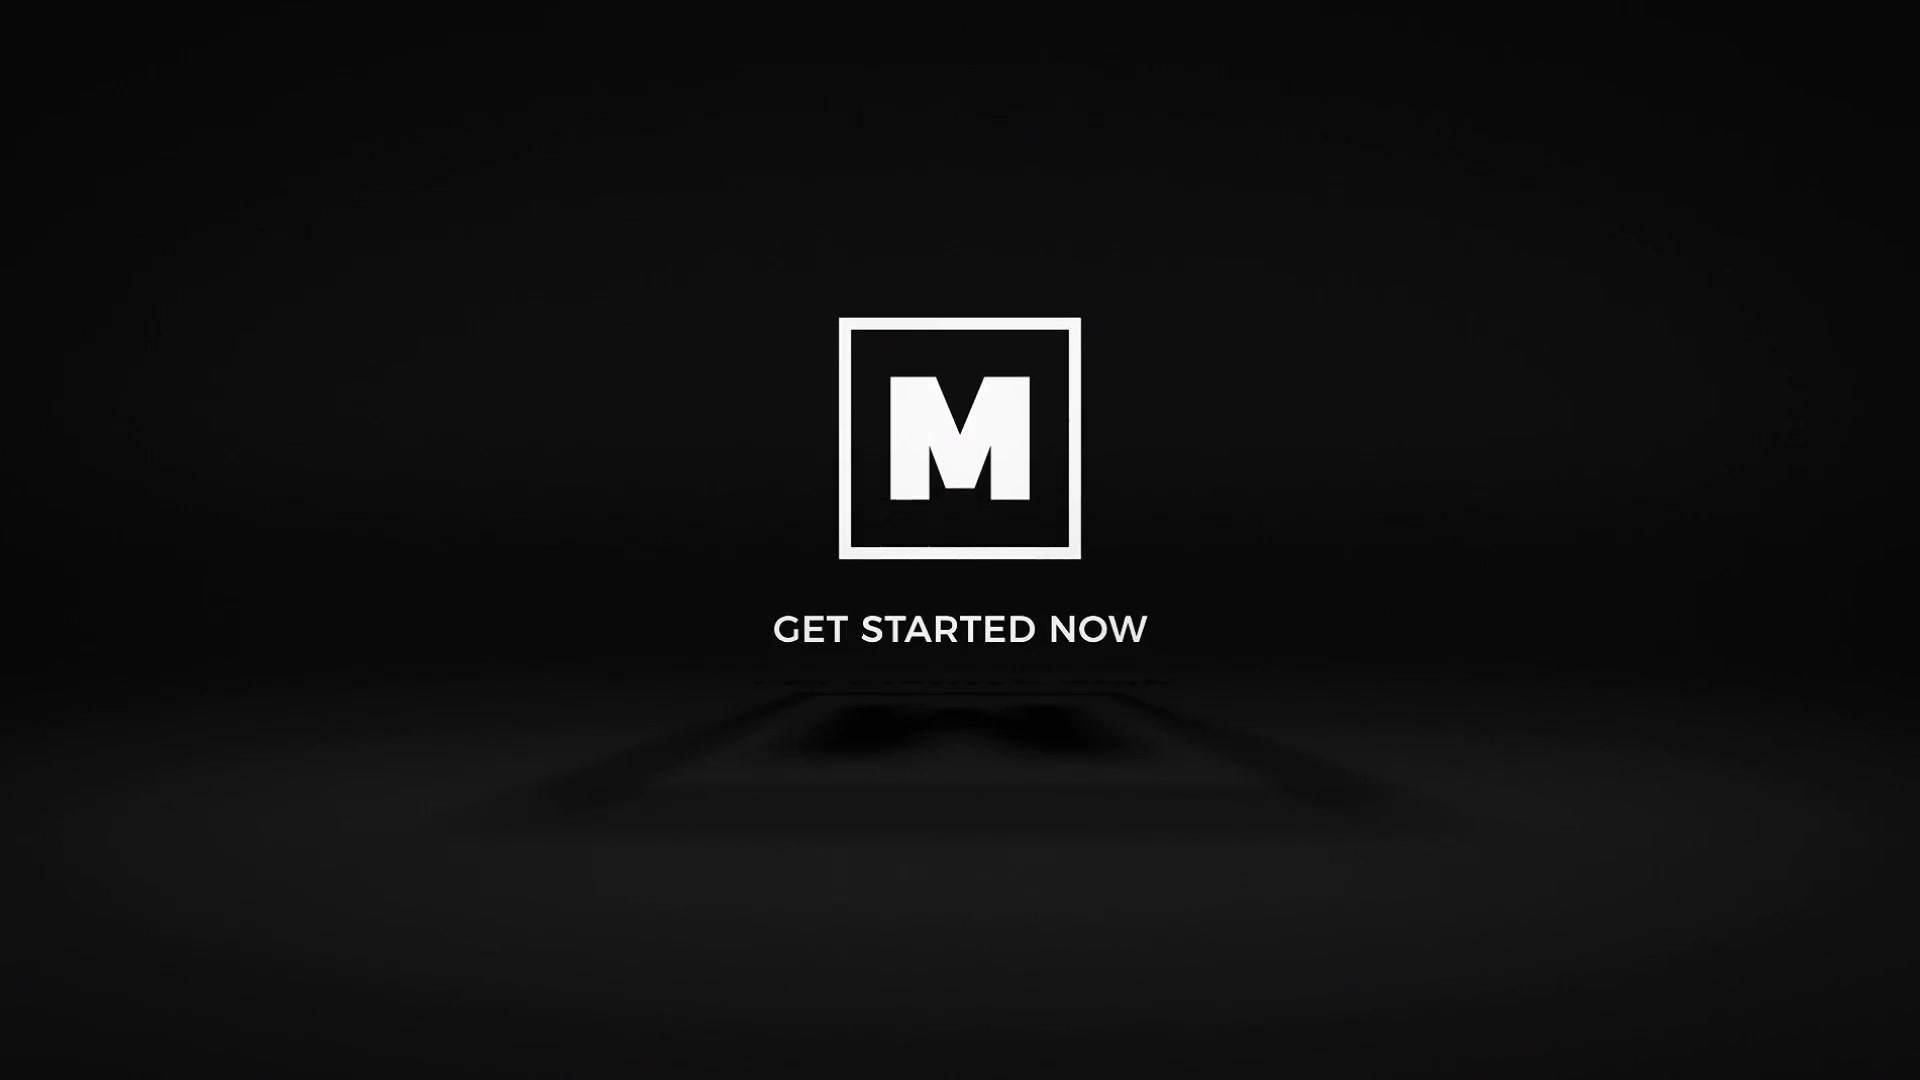 Dark Logo Opener | now also in 4K - Download Videohive 19520555